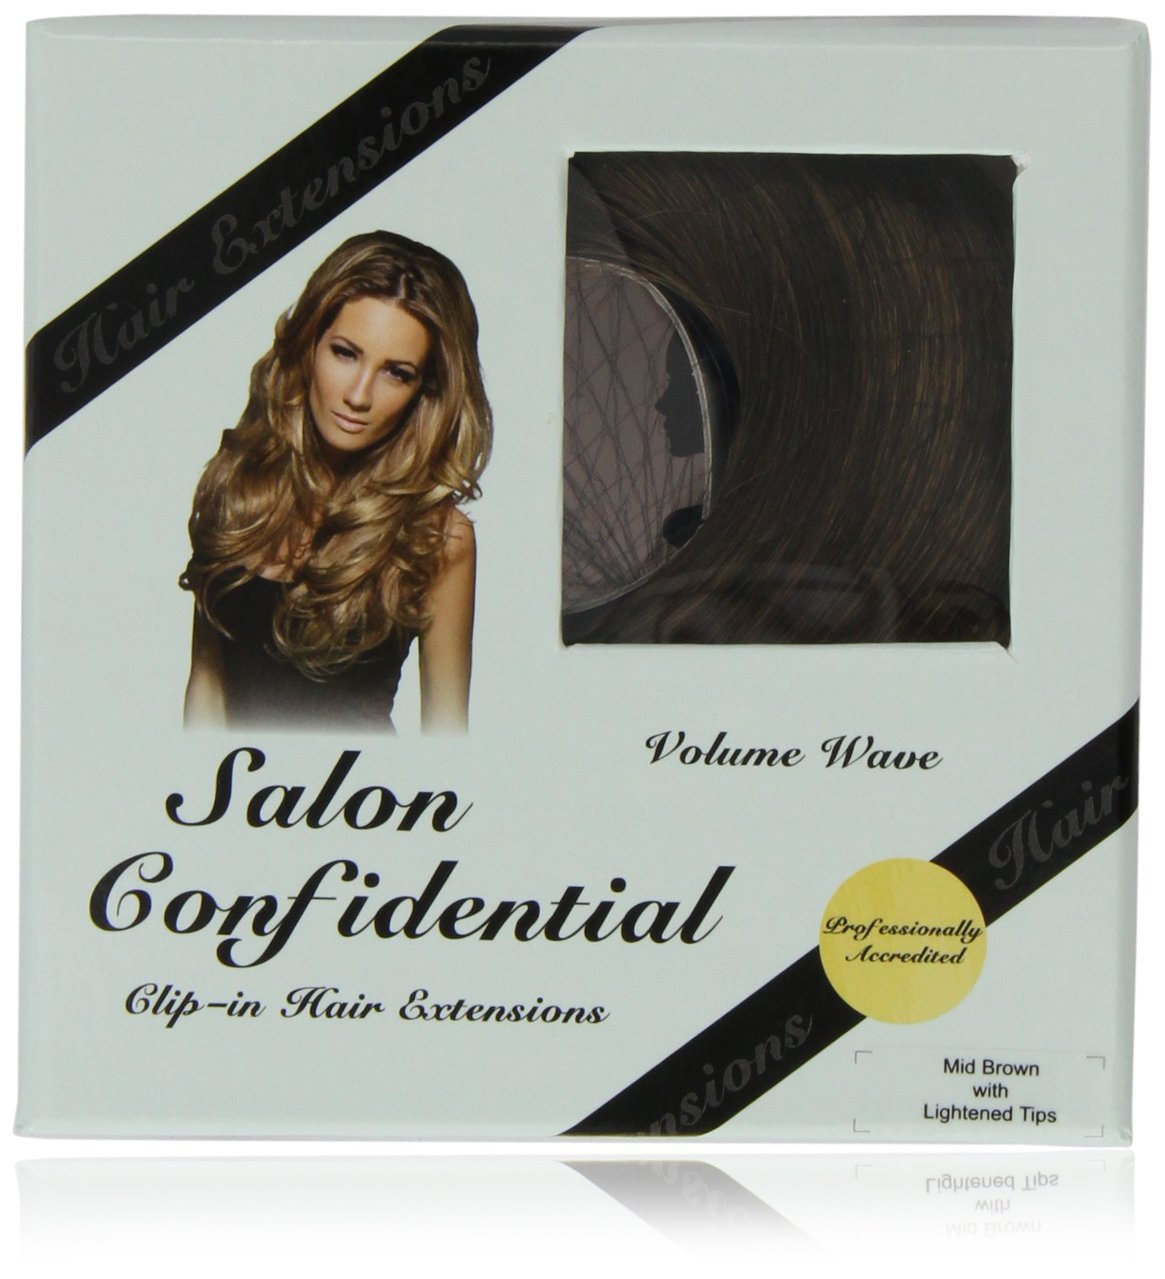 Salon confidential volume wave clip in hair extensions red blonde salon confidential volume wave clip in hair extensions red blonde amazon beauty pmusecretfo Image collections